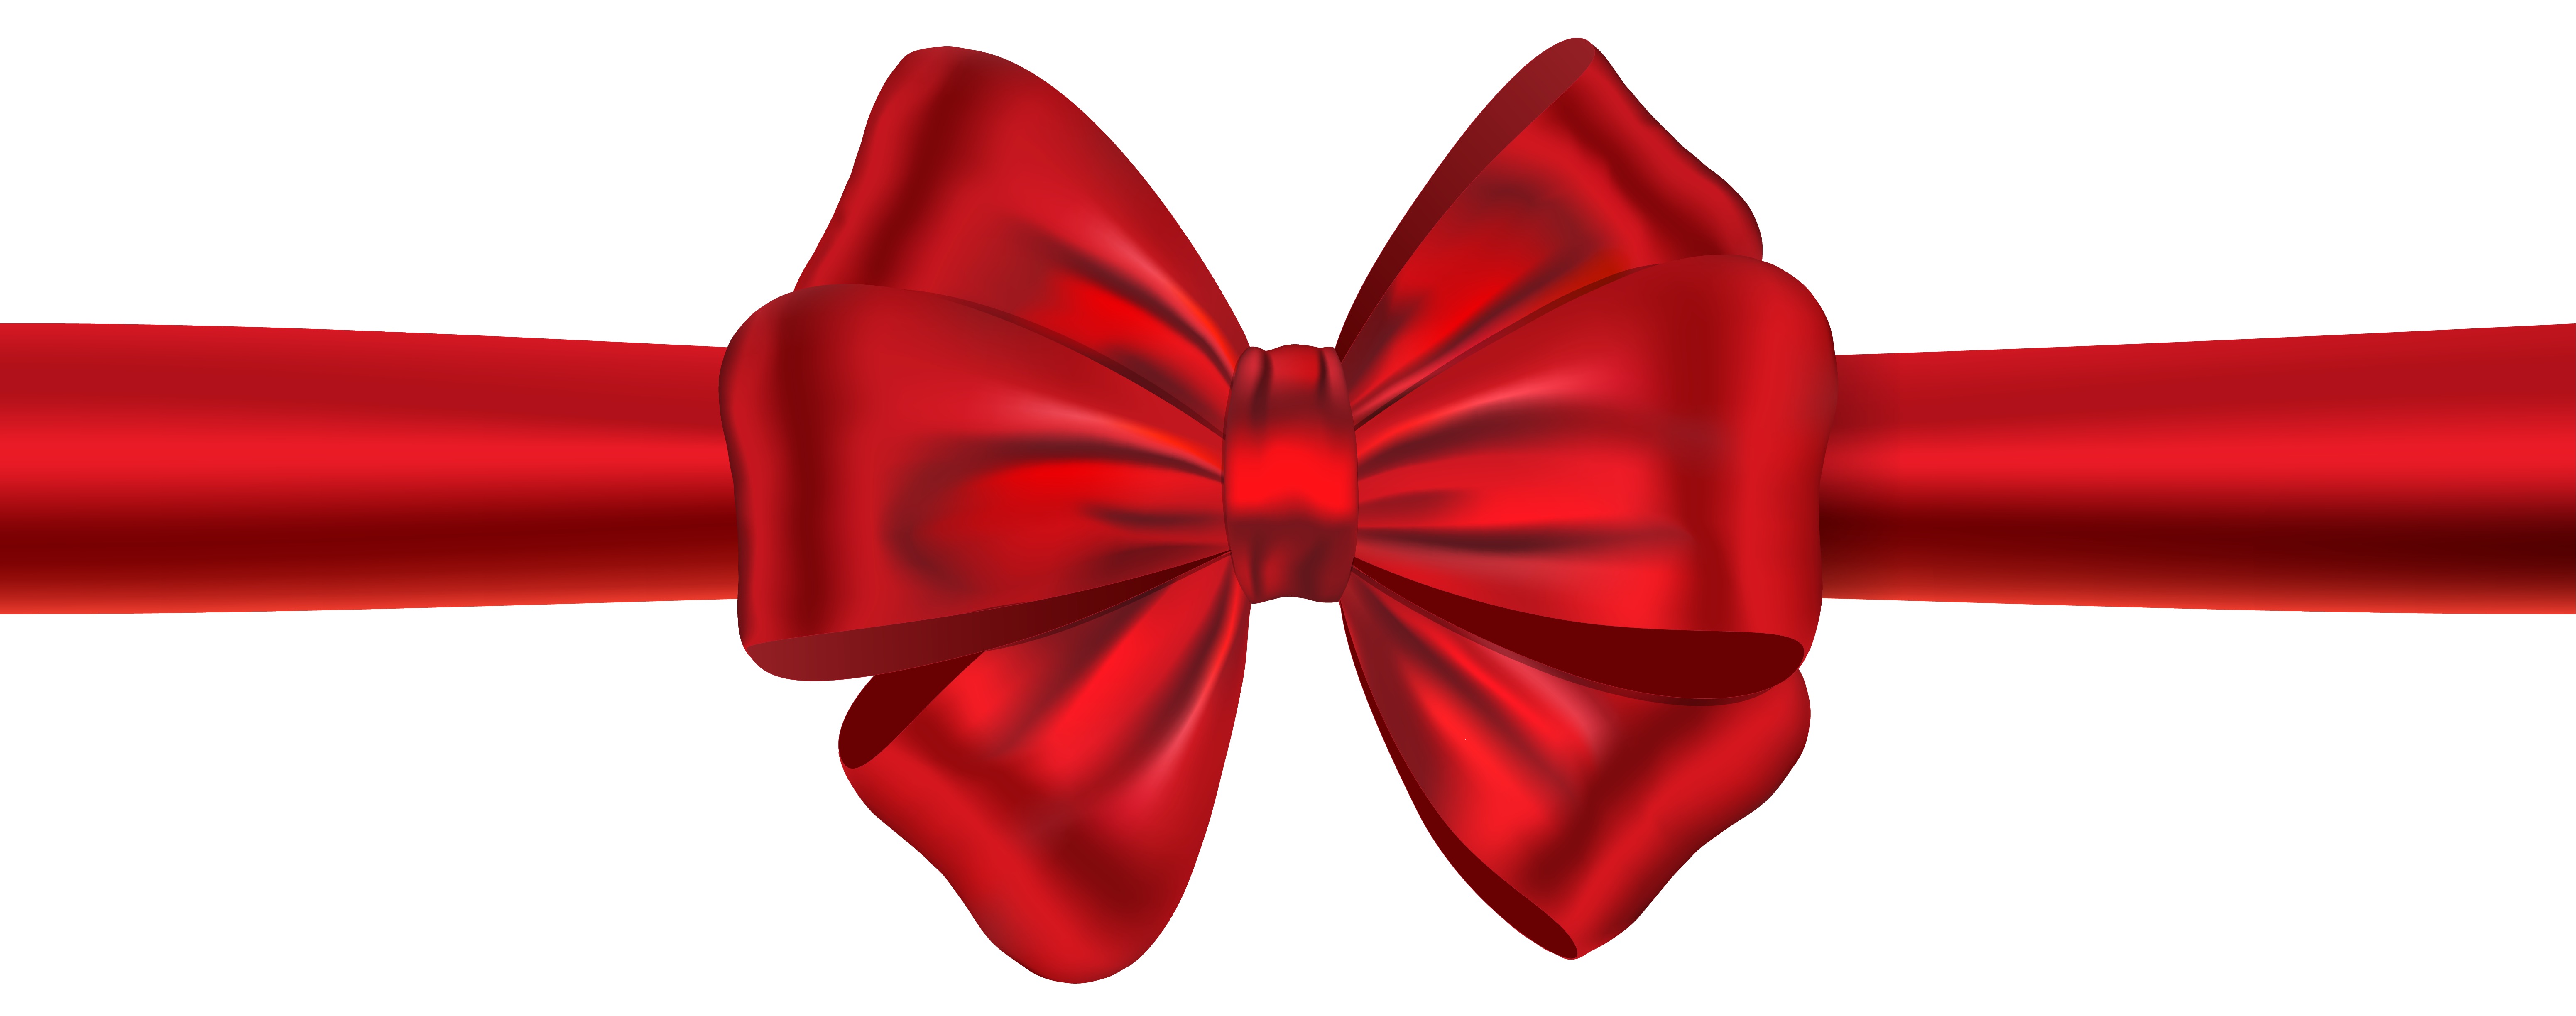 Clip Art Red Ribbon Clipart red ribbon image clipart best with bow png image